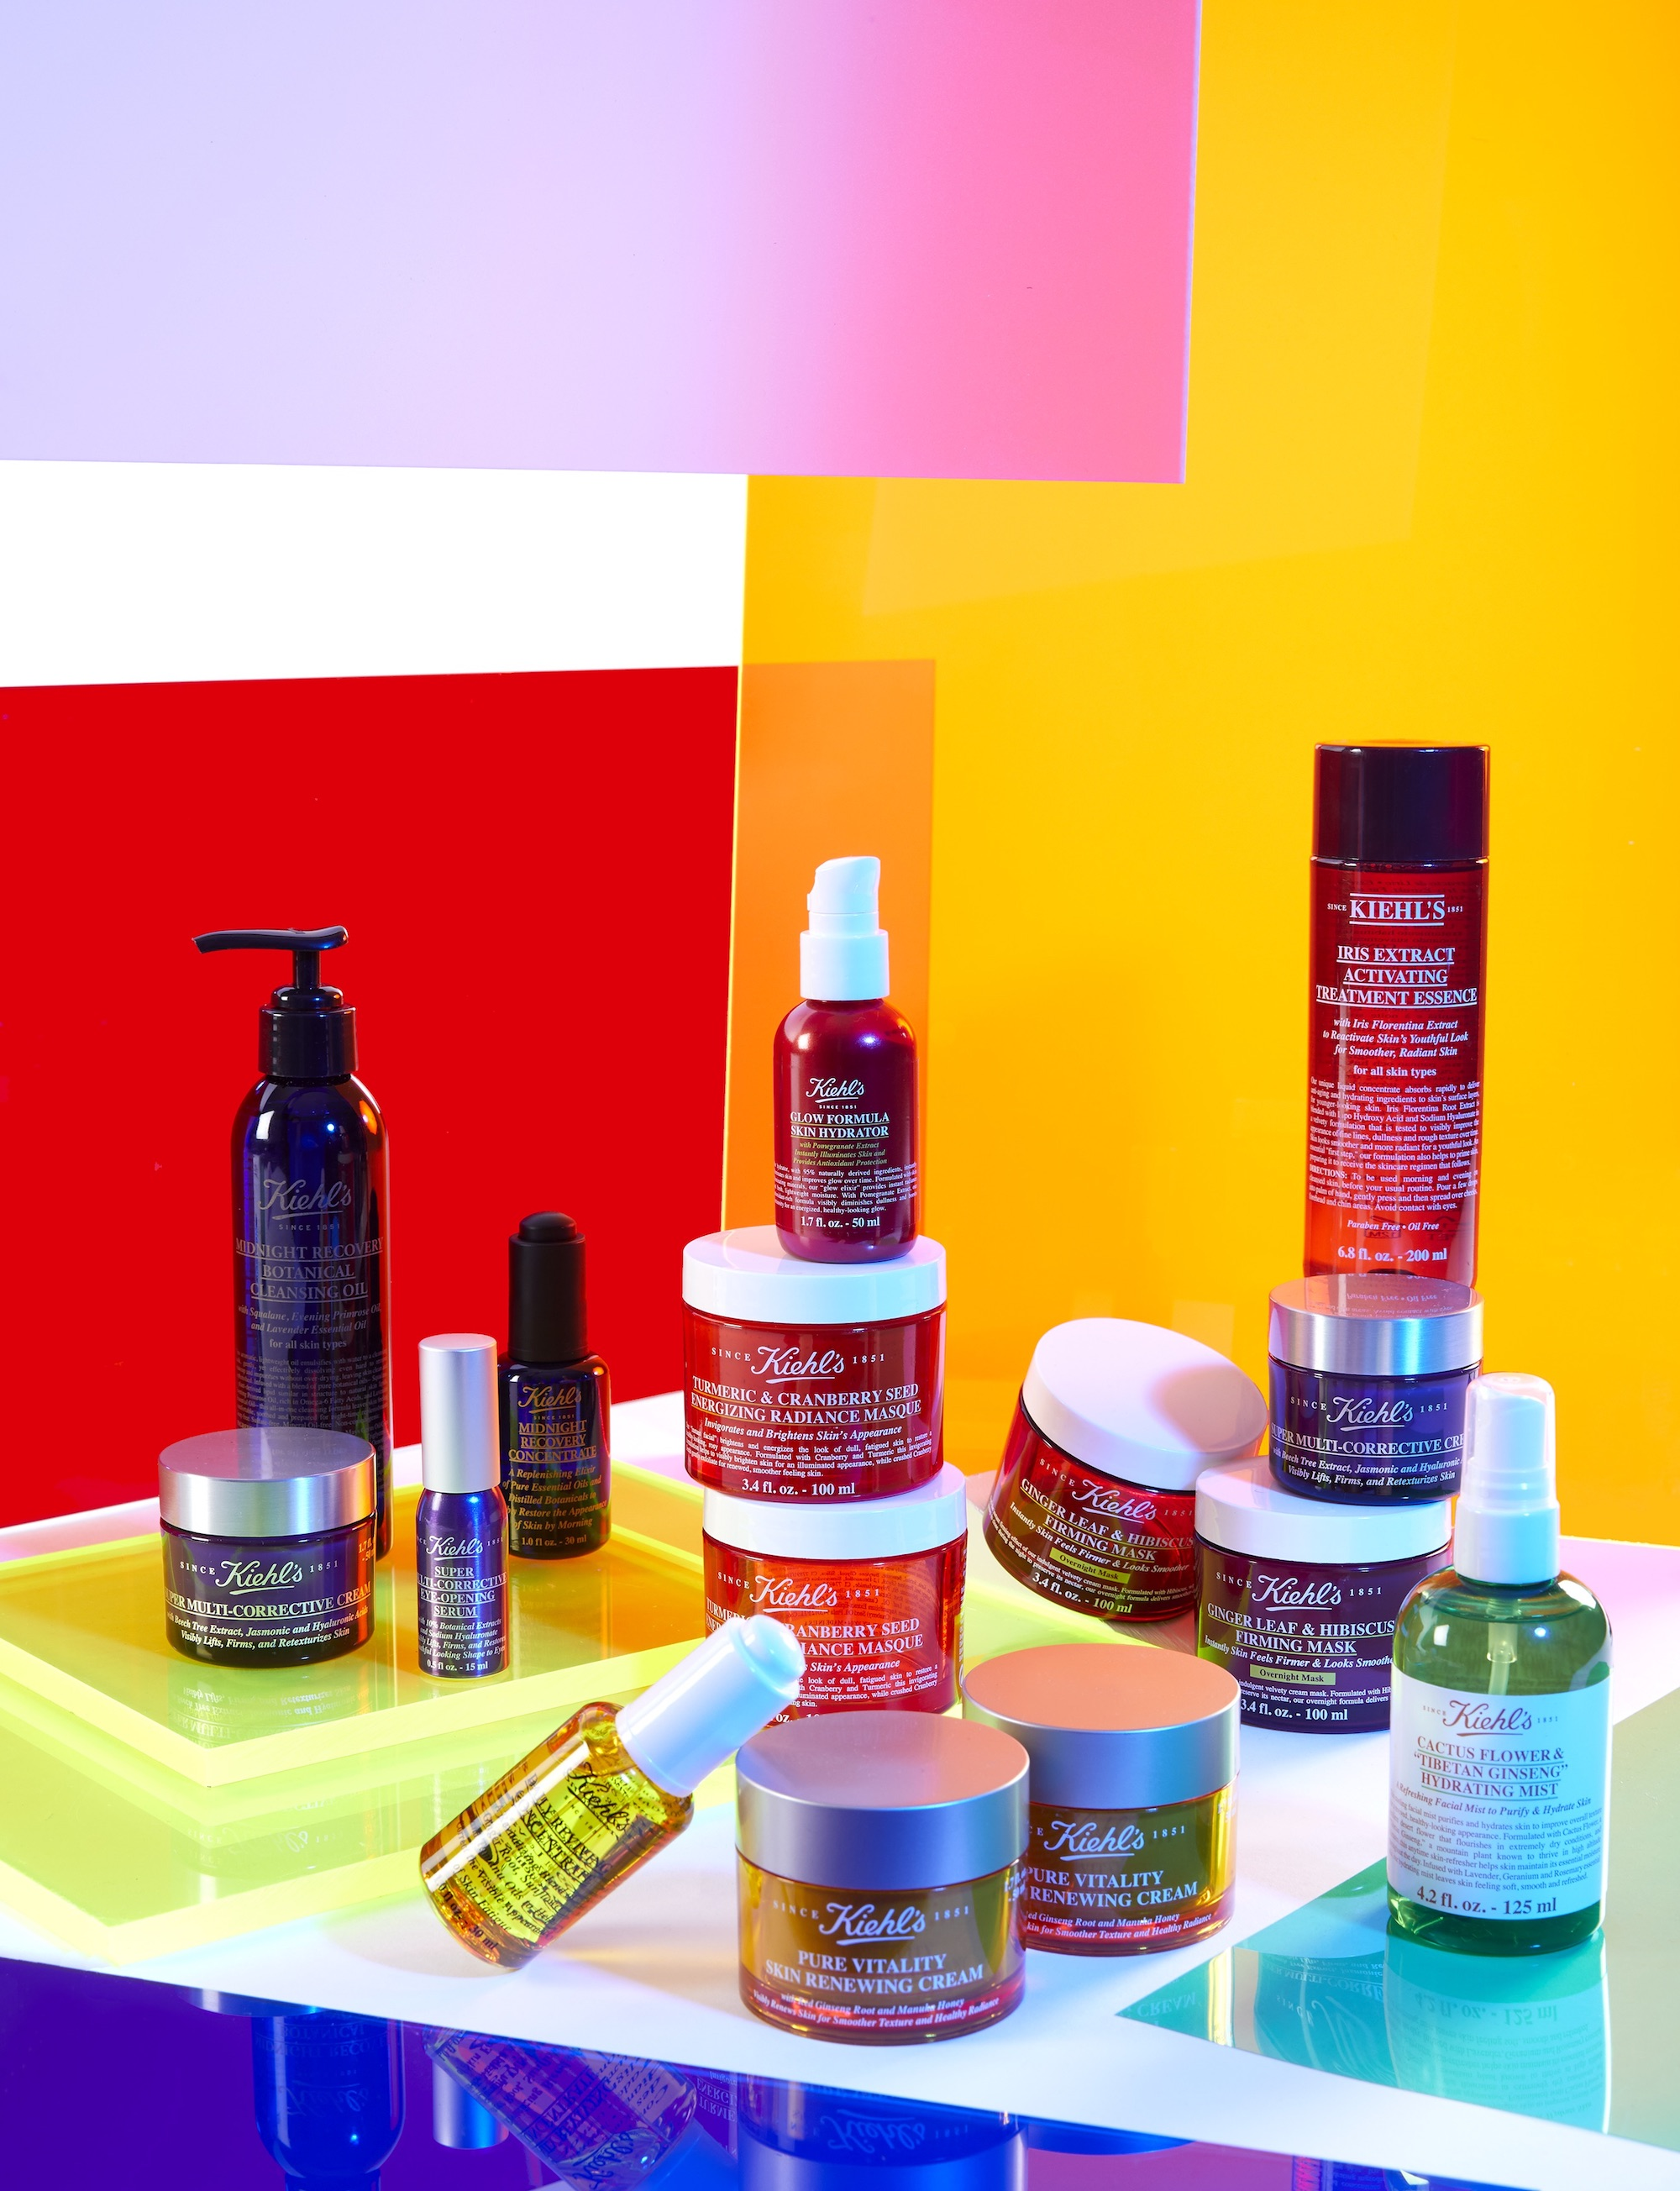 Kiehl's x Pride in Summer 19 issue of Wonderland